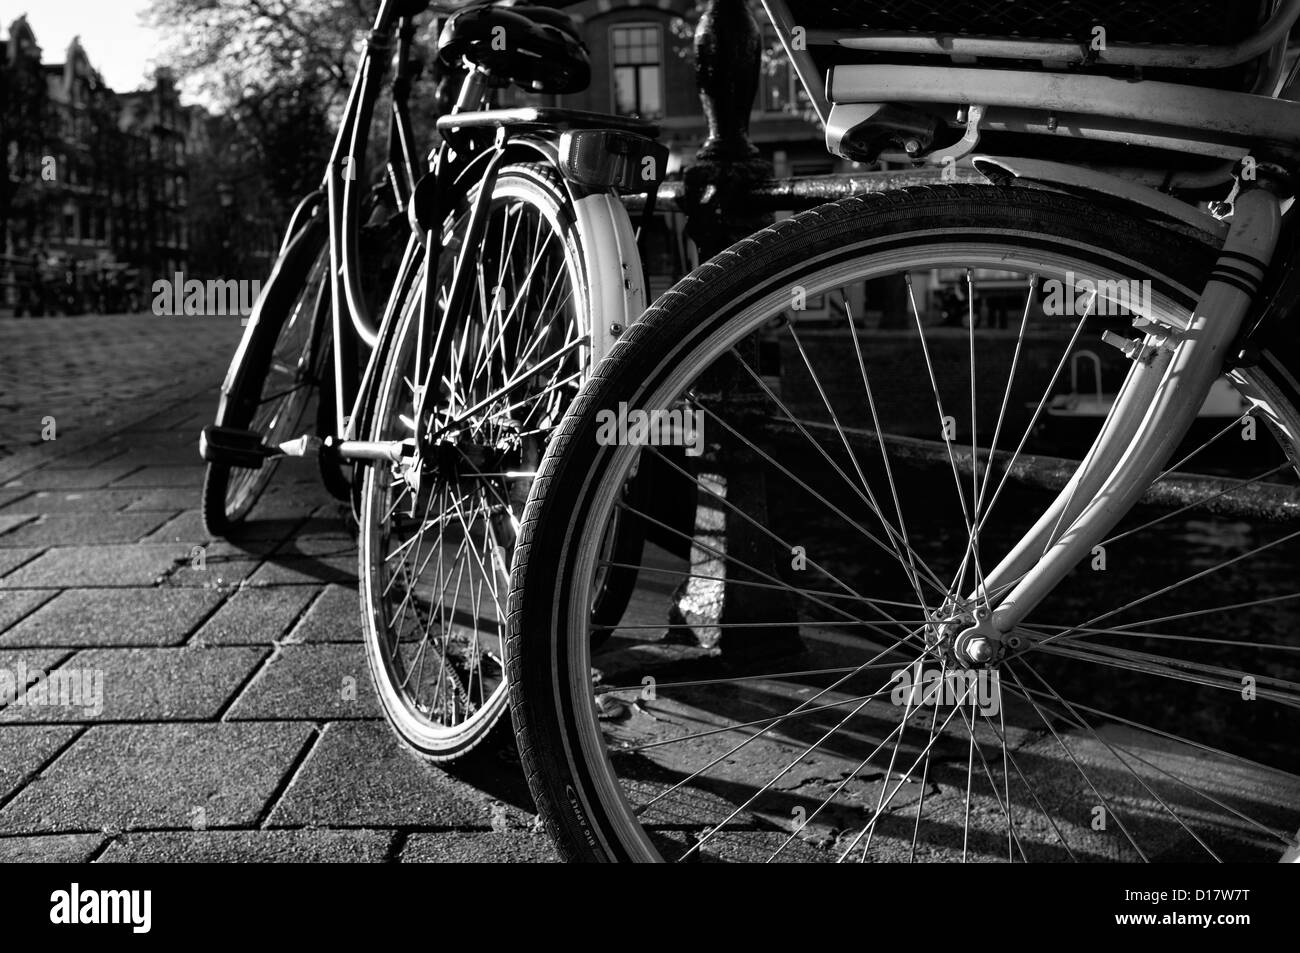 Holland, Amsterdam, bicycles parked by a bridge - Stock Image